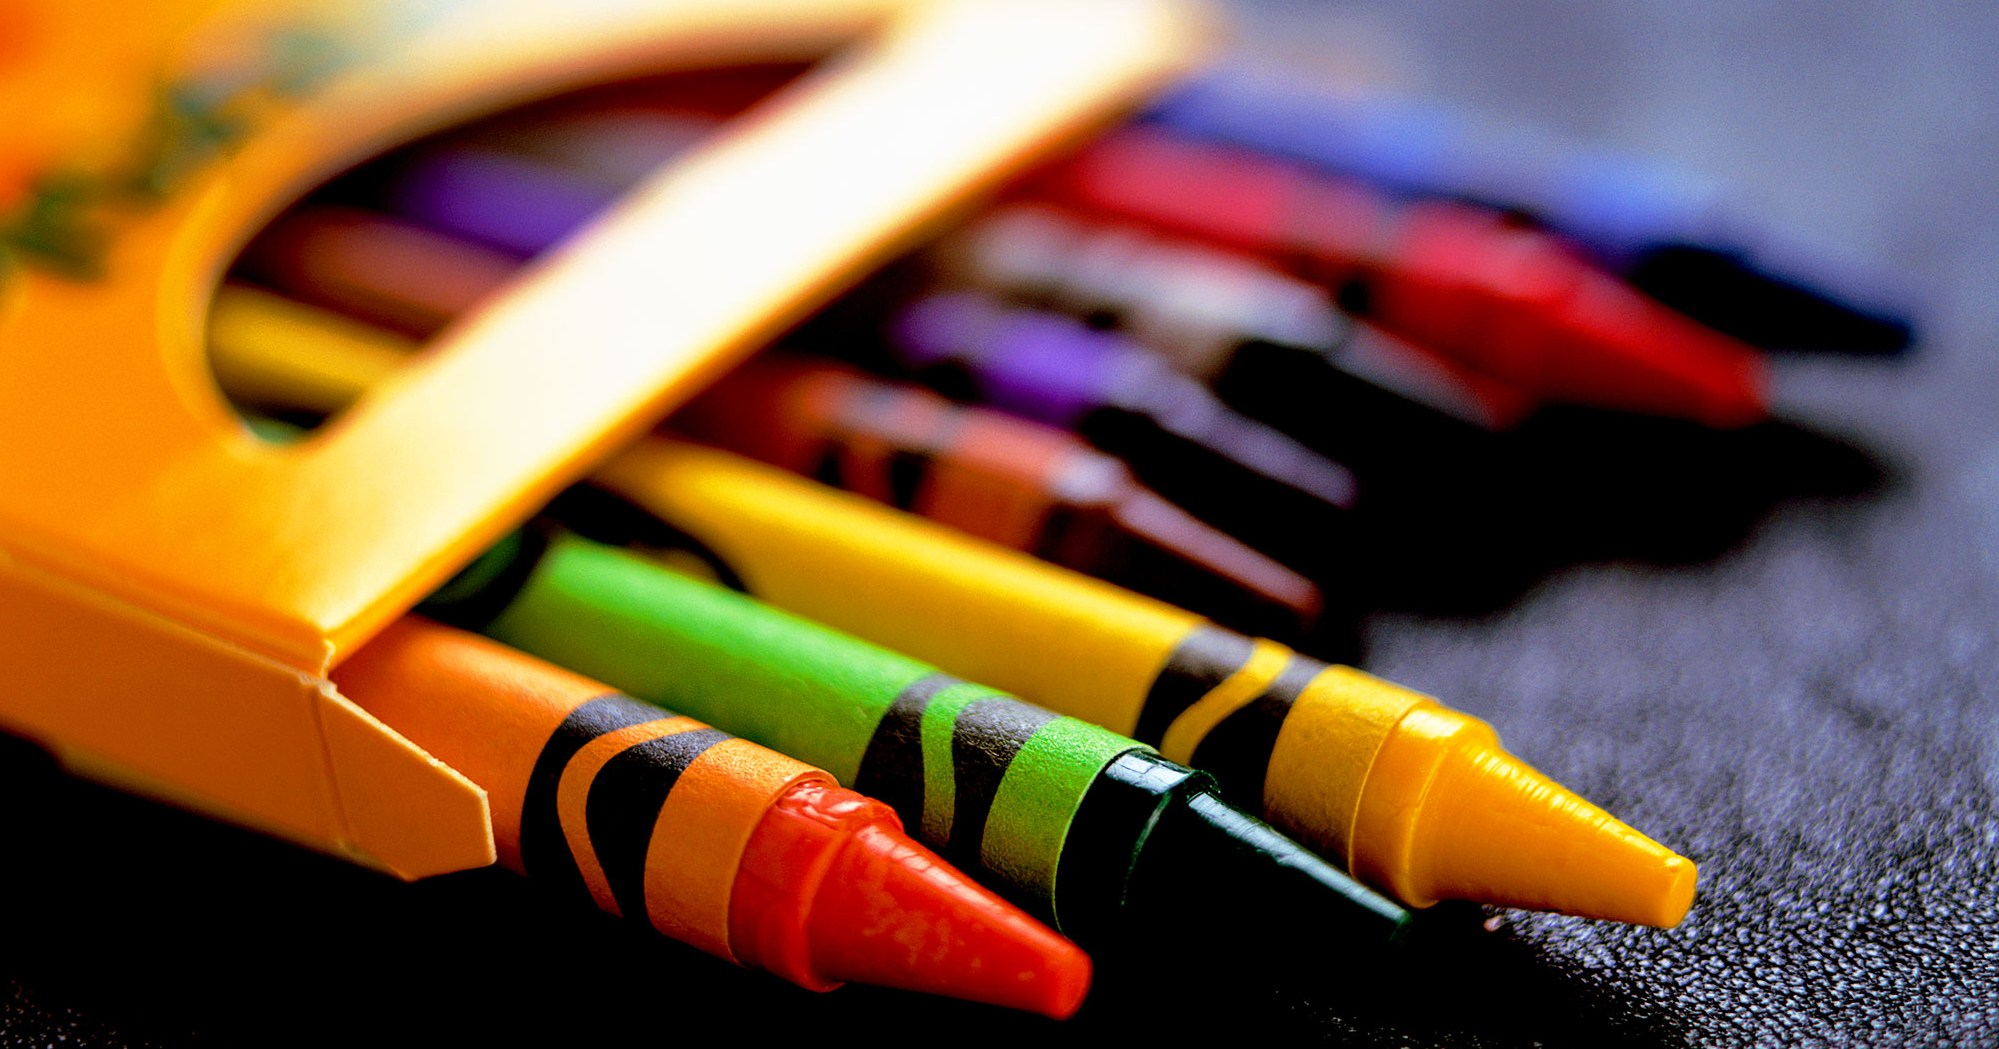 Crayola Announces Color Naming Contest for New Crayon to Replace Retired Dandelion